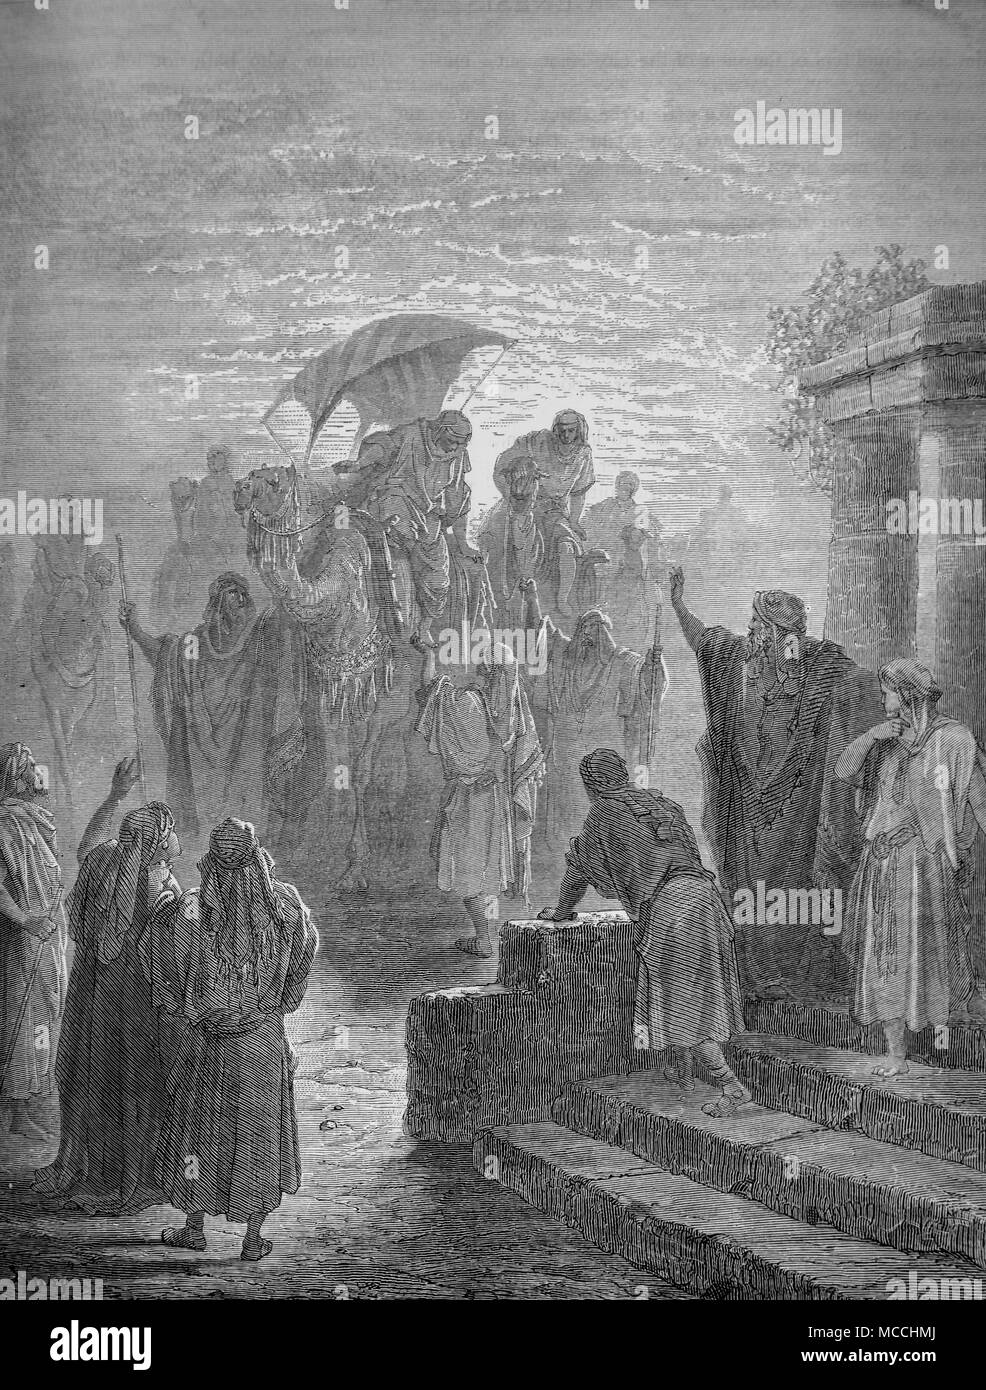 The Meeting of Isaac and Rebecca. Bible illustration by Gustave Doré. Stock Photo